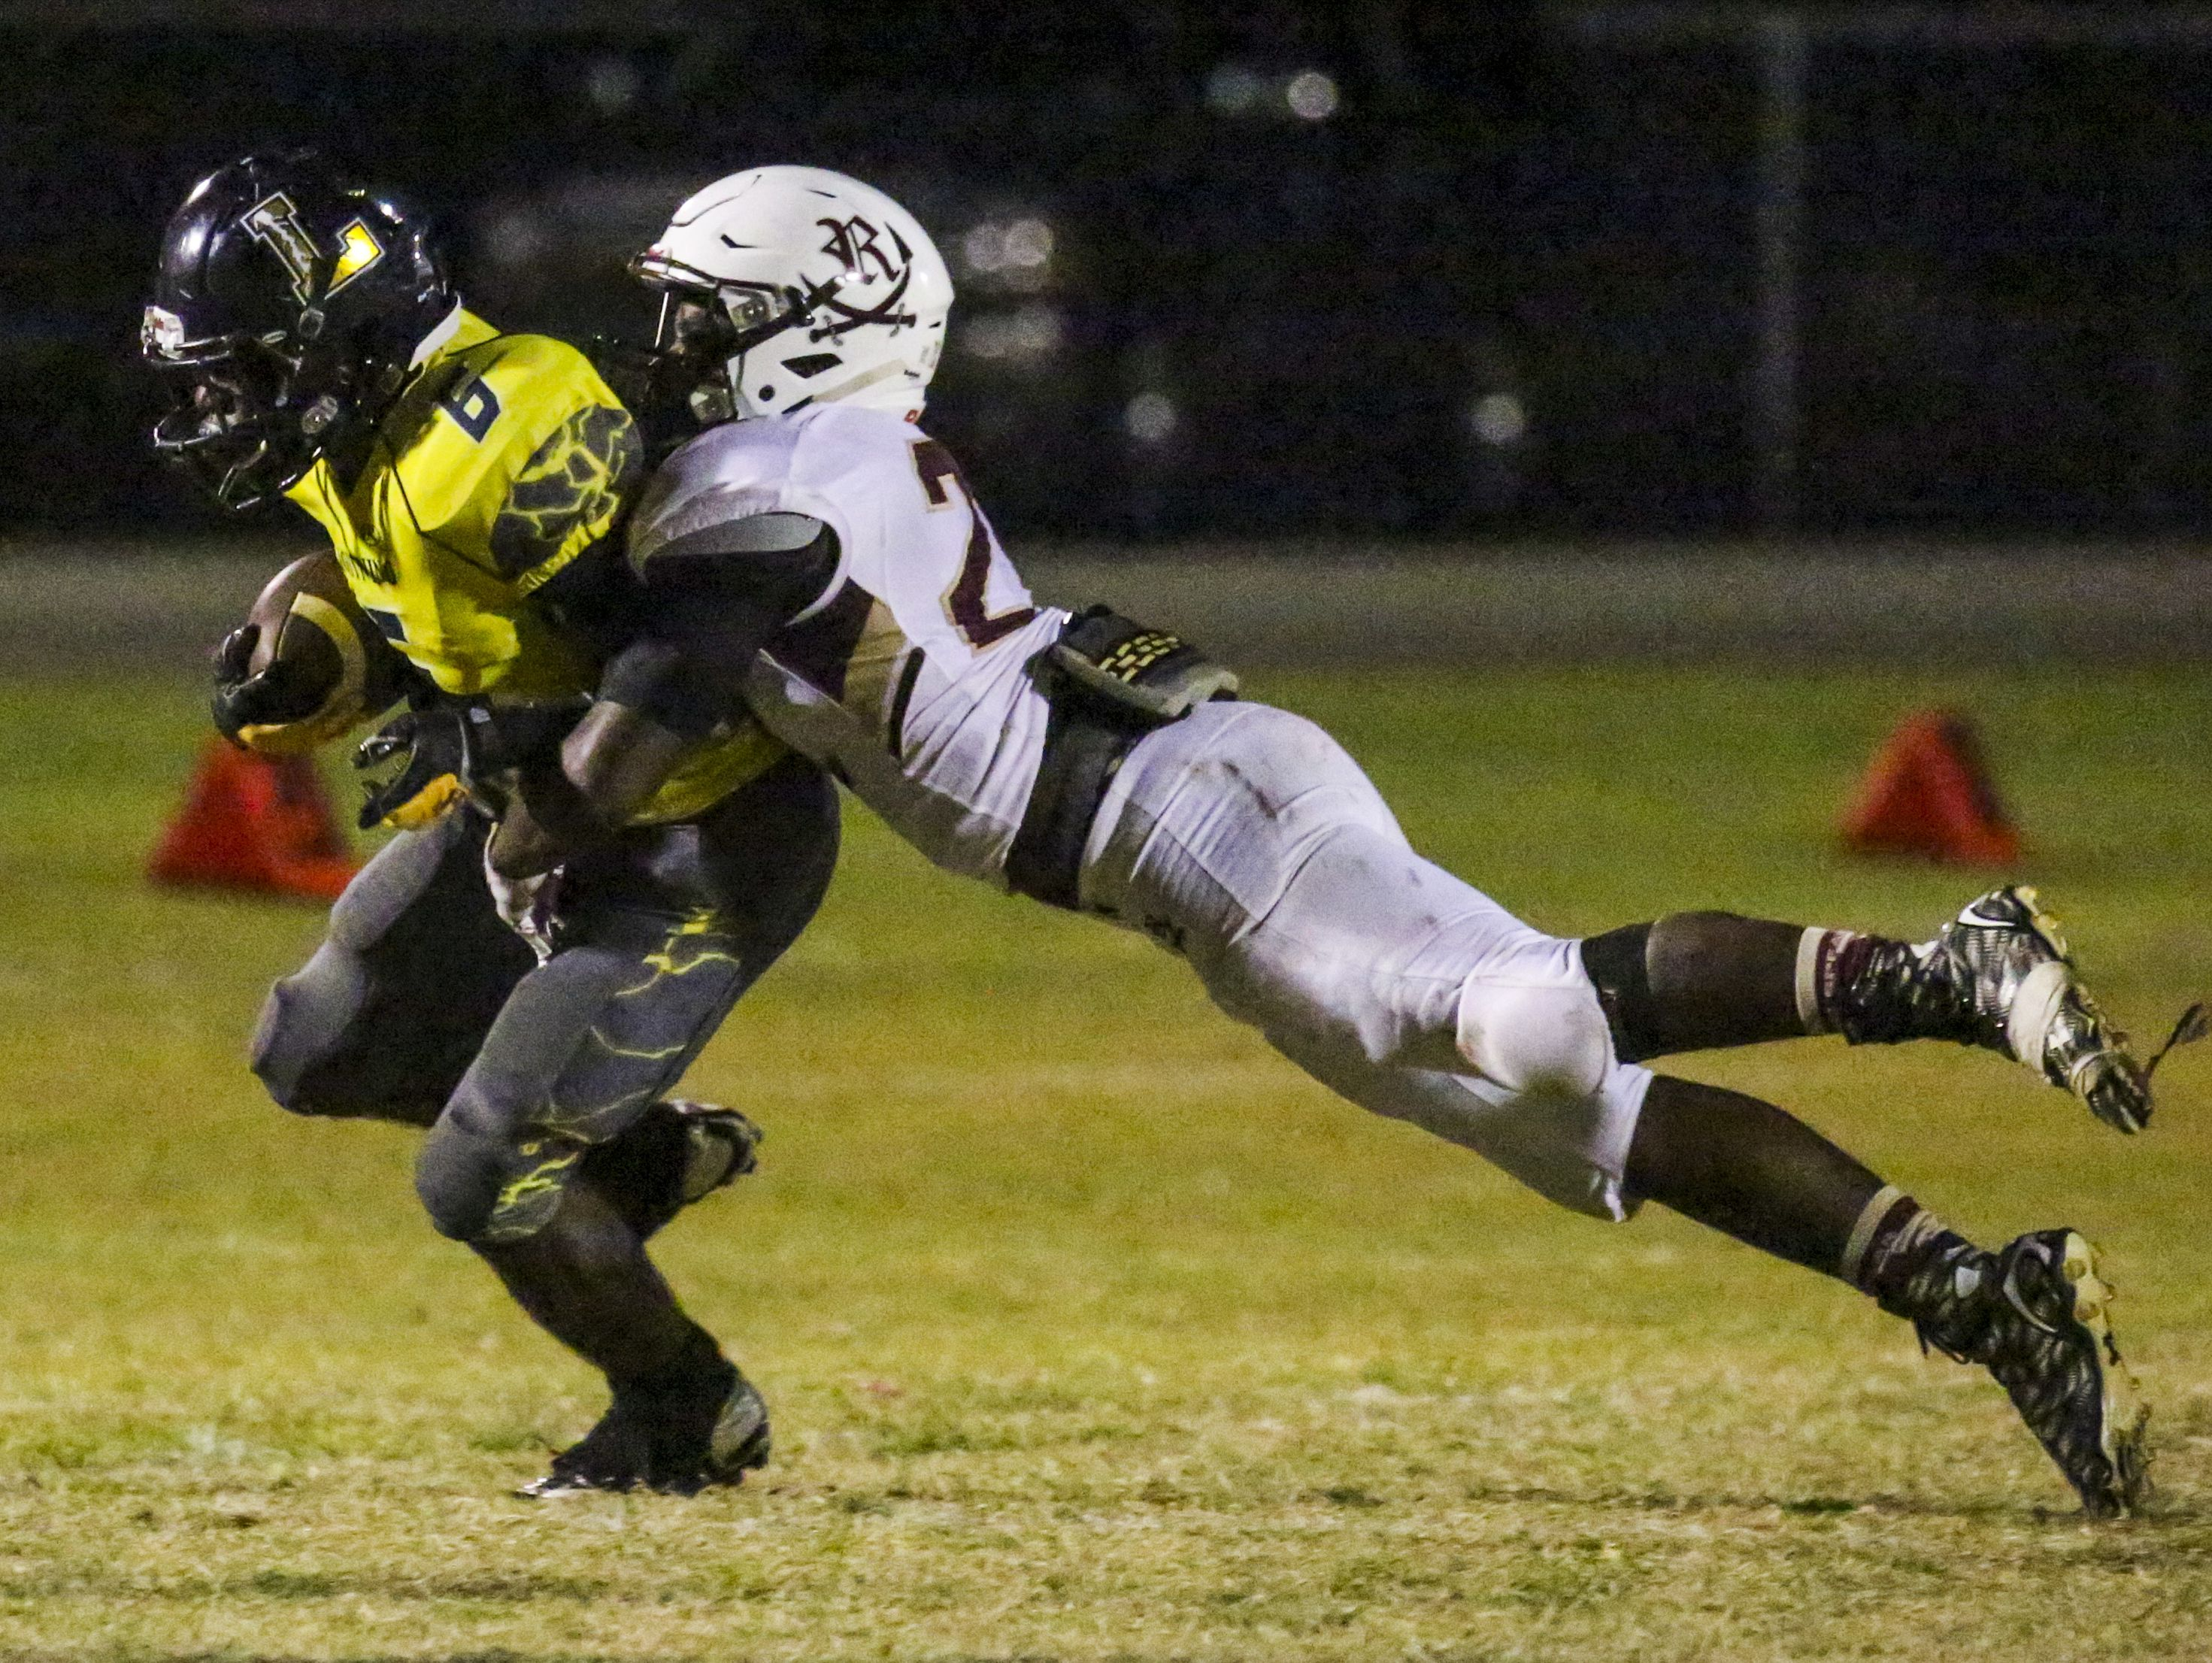 Lehigh's Jalane Nelson is brought down by Riverdale's Andres Bartley as he gains yards for the Lightning during the Riverdale at Lehigh football game.